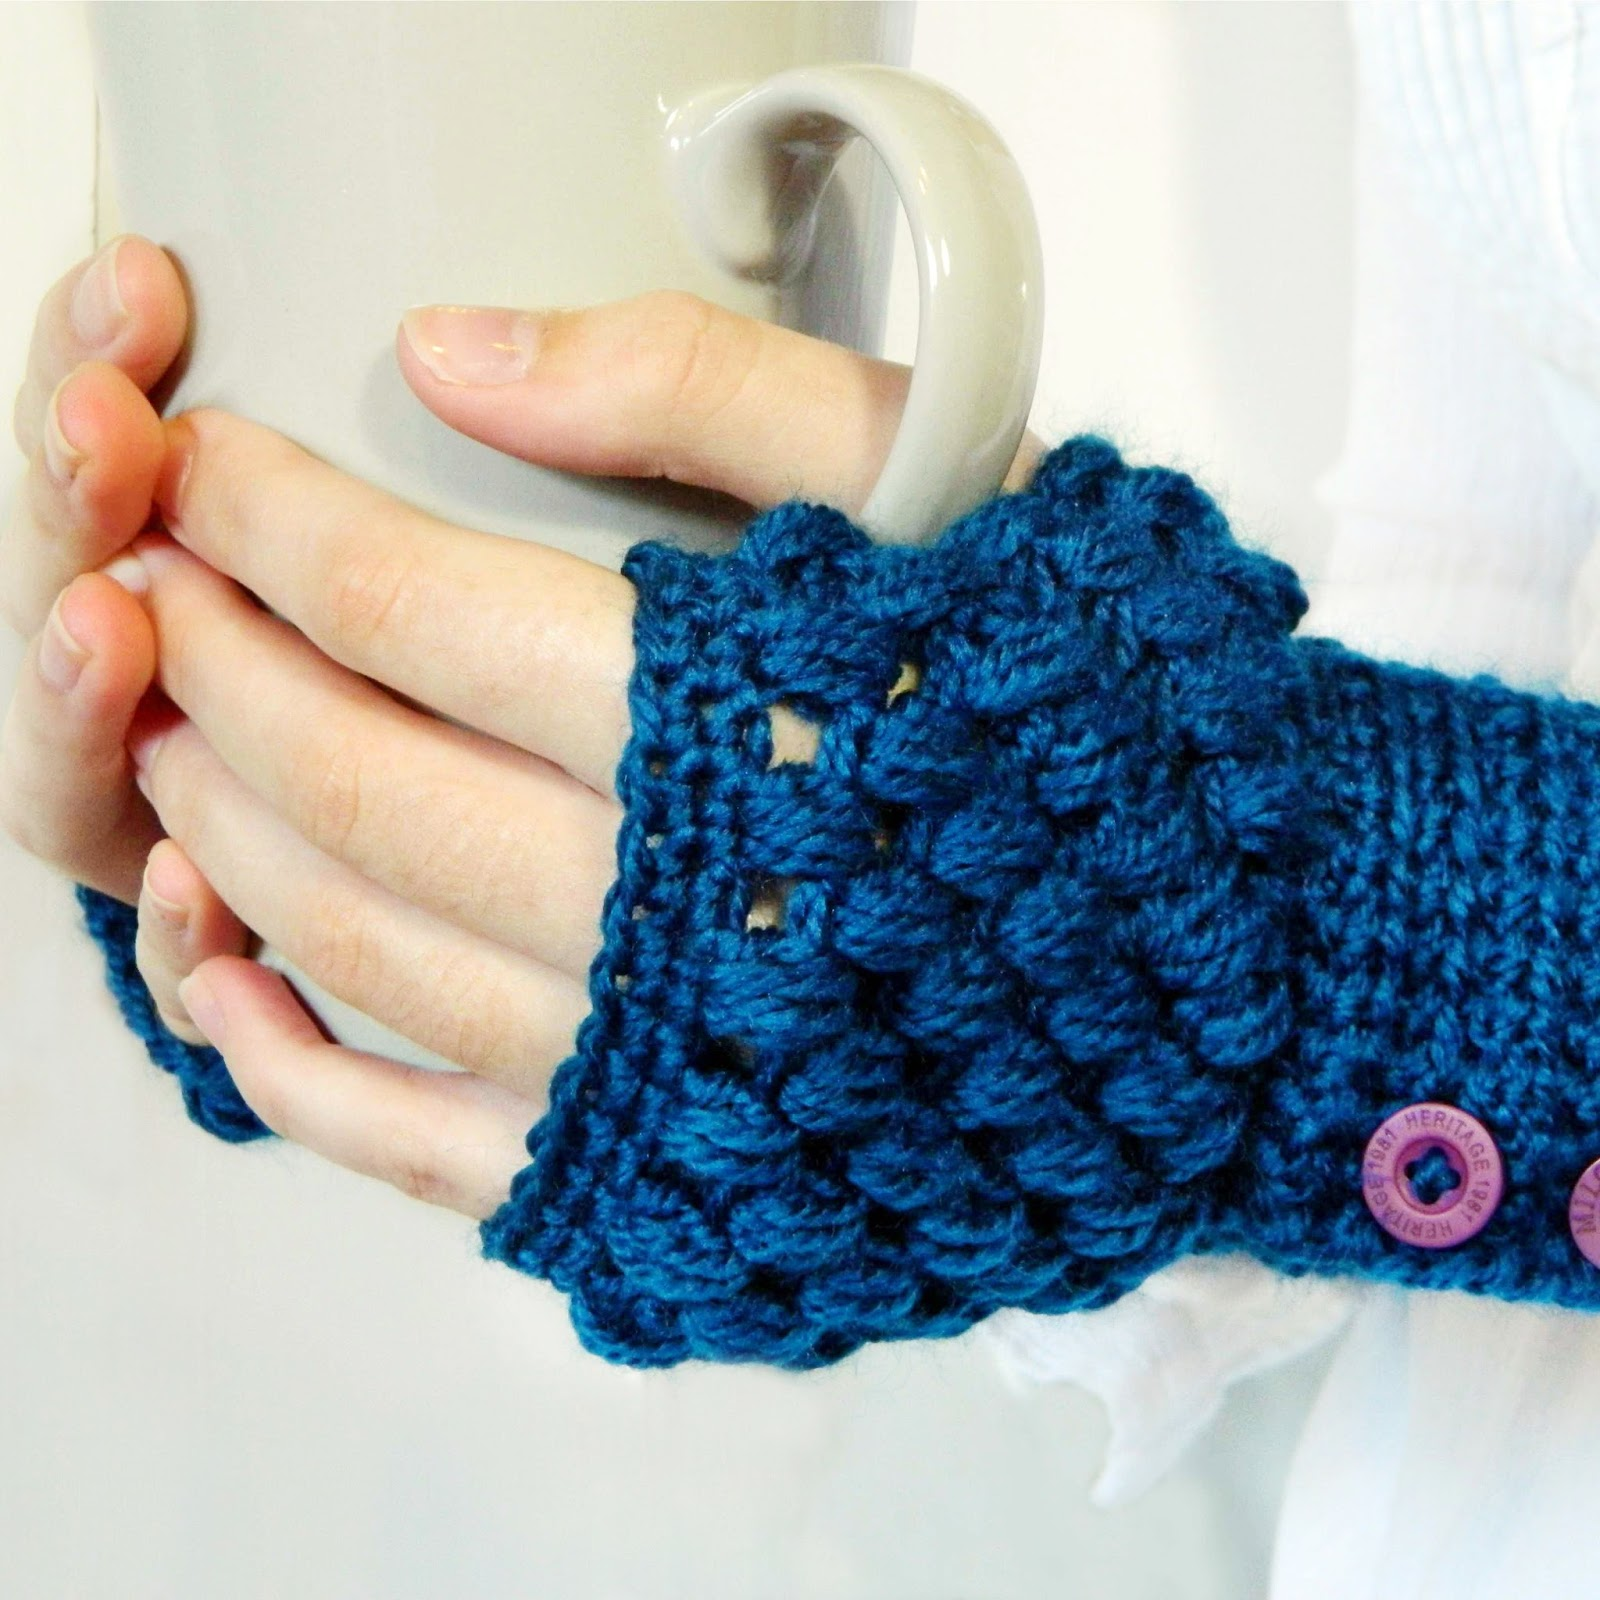 Crochet Patterns Gloves : ... Craft, Crochet, Create: Puff Stitch Fingerless Gloves Crochet Pattern